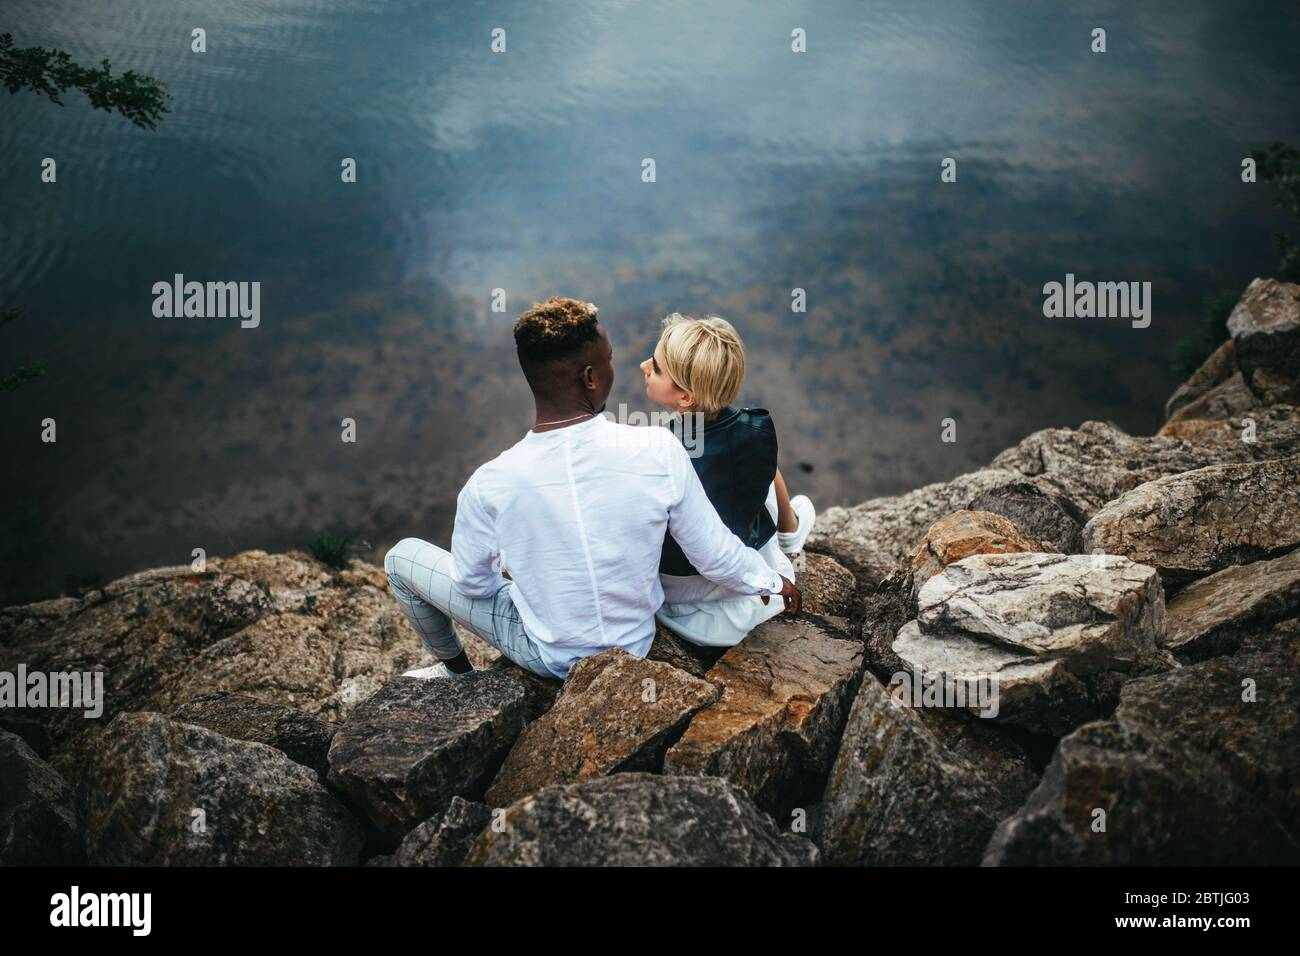 Interracial couple sits on rocks and hugs against background of river. Concept of love relationships and unity between different human races. Stock Photo